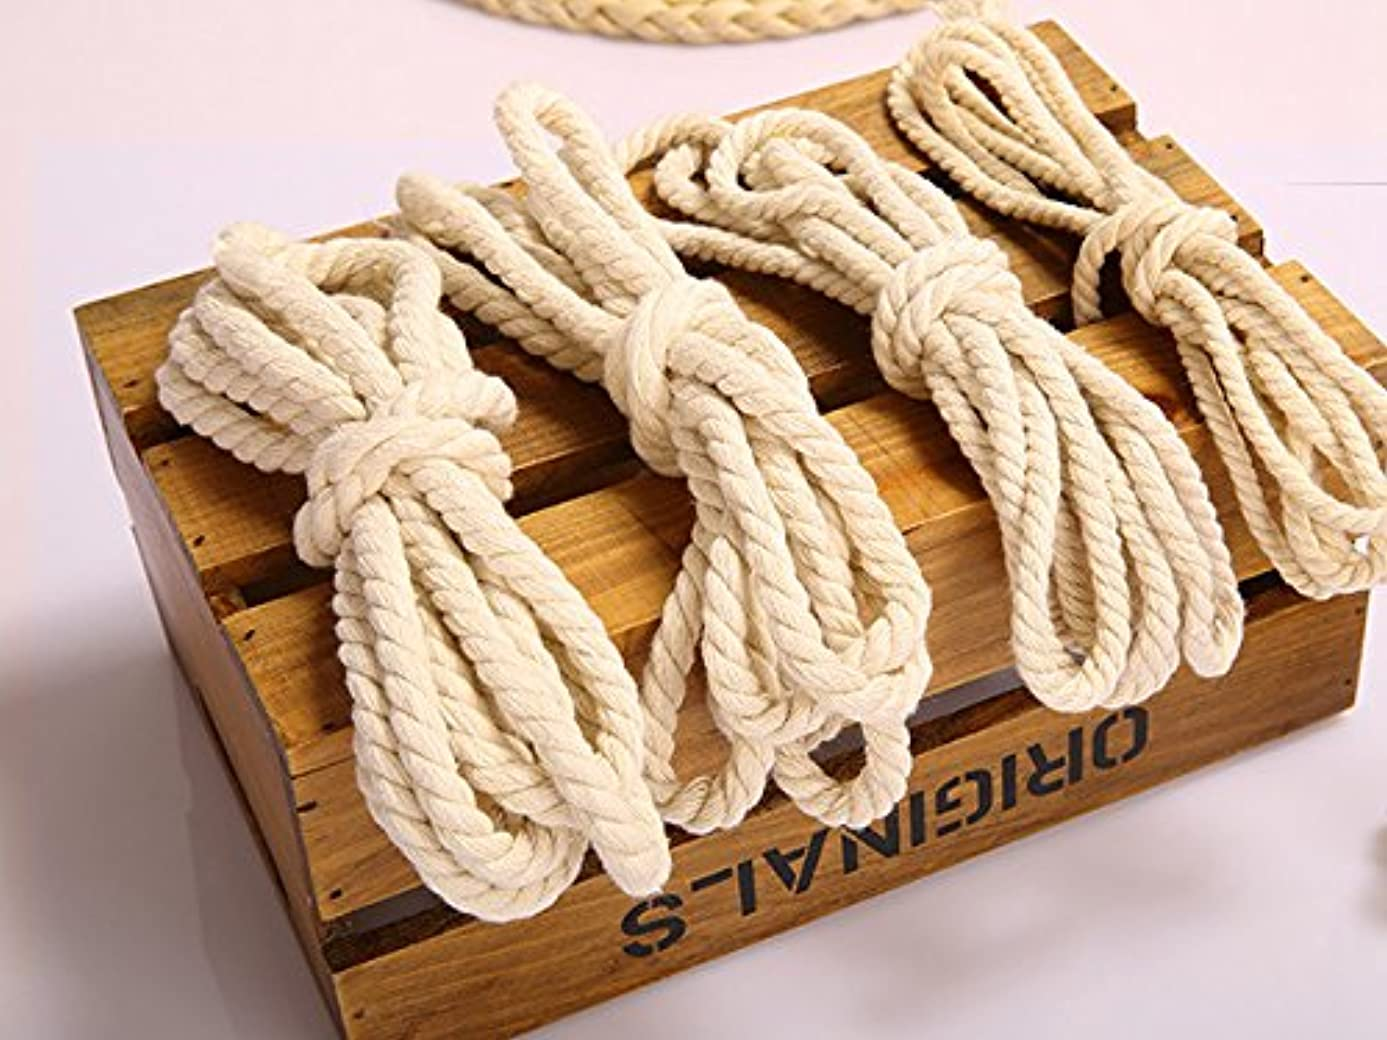 3 Meters Decoration Cotton Rope 5mm 6mm 7mm 8mm 10mm 12mm 15mm 20mm Craft Supplies #2373